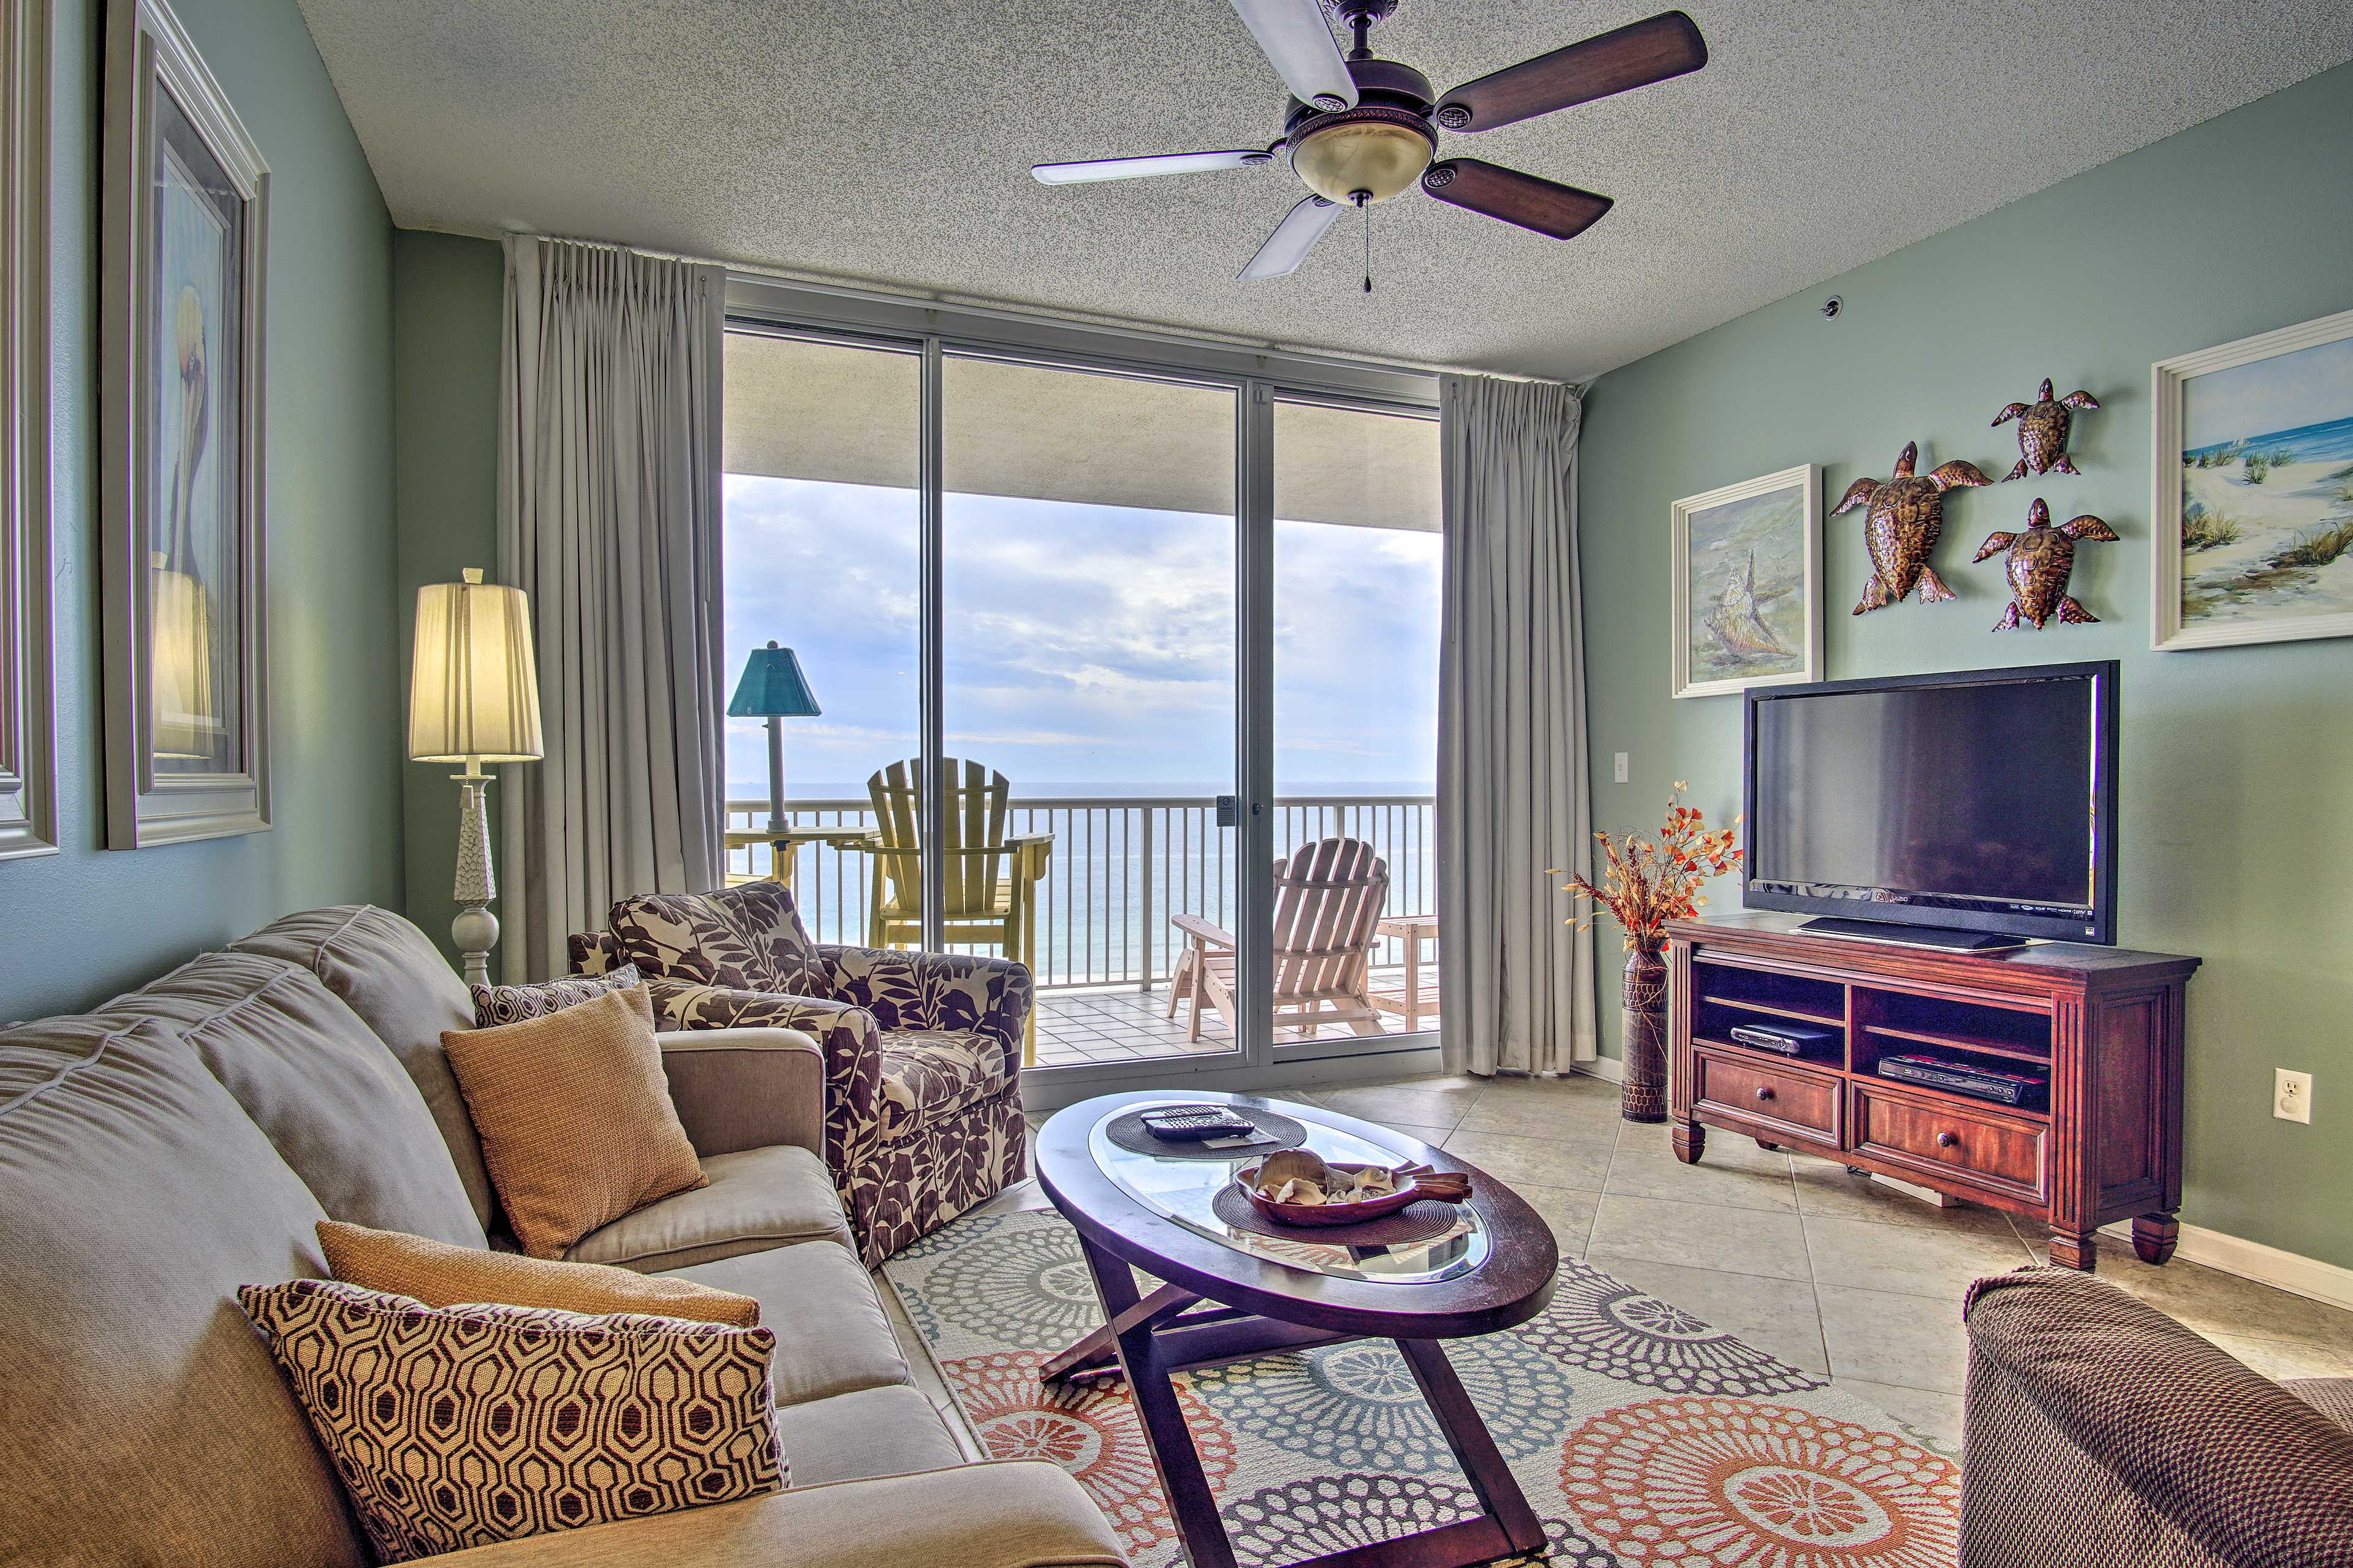 This 2-bedroom, 2-bath vacation rental condo is just steps from the beach.